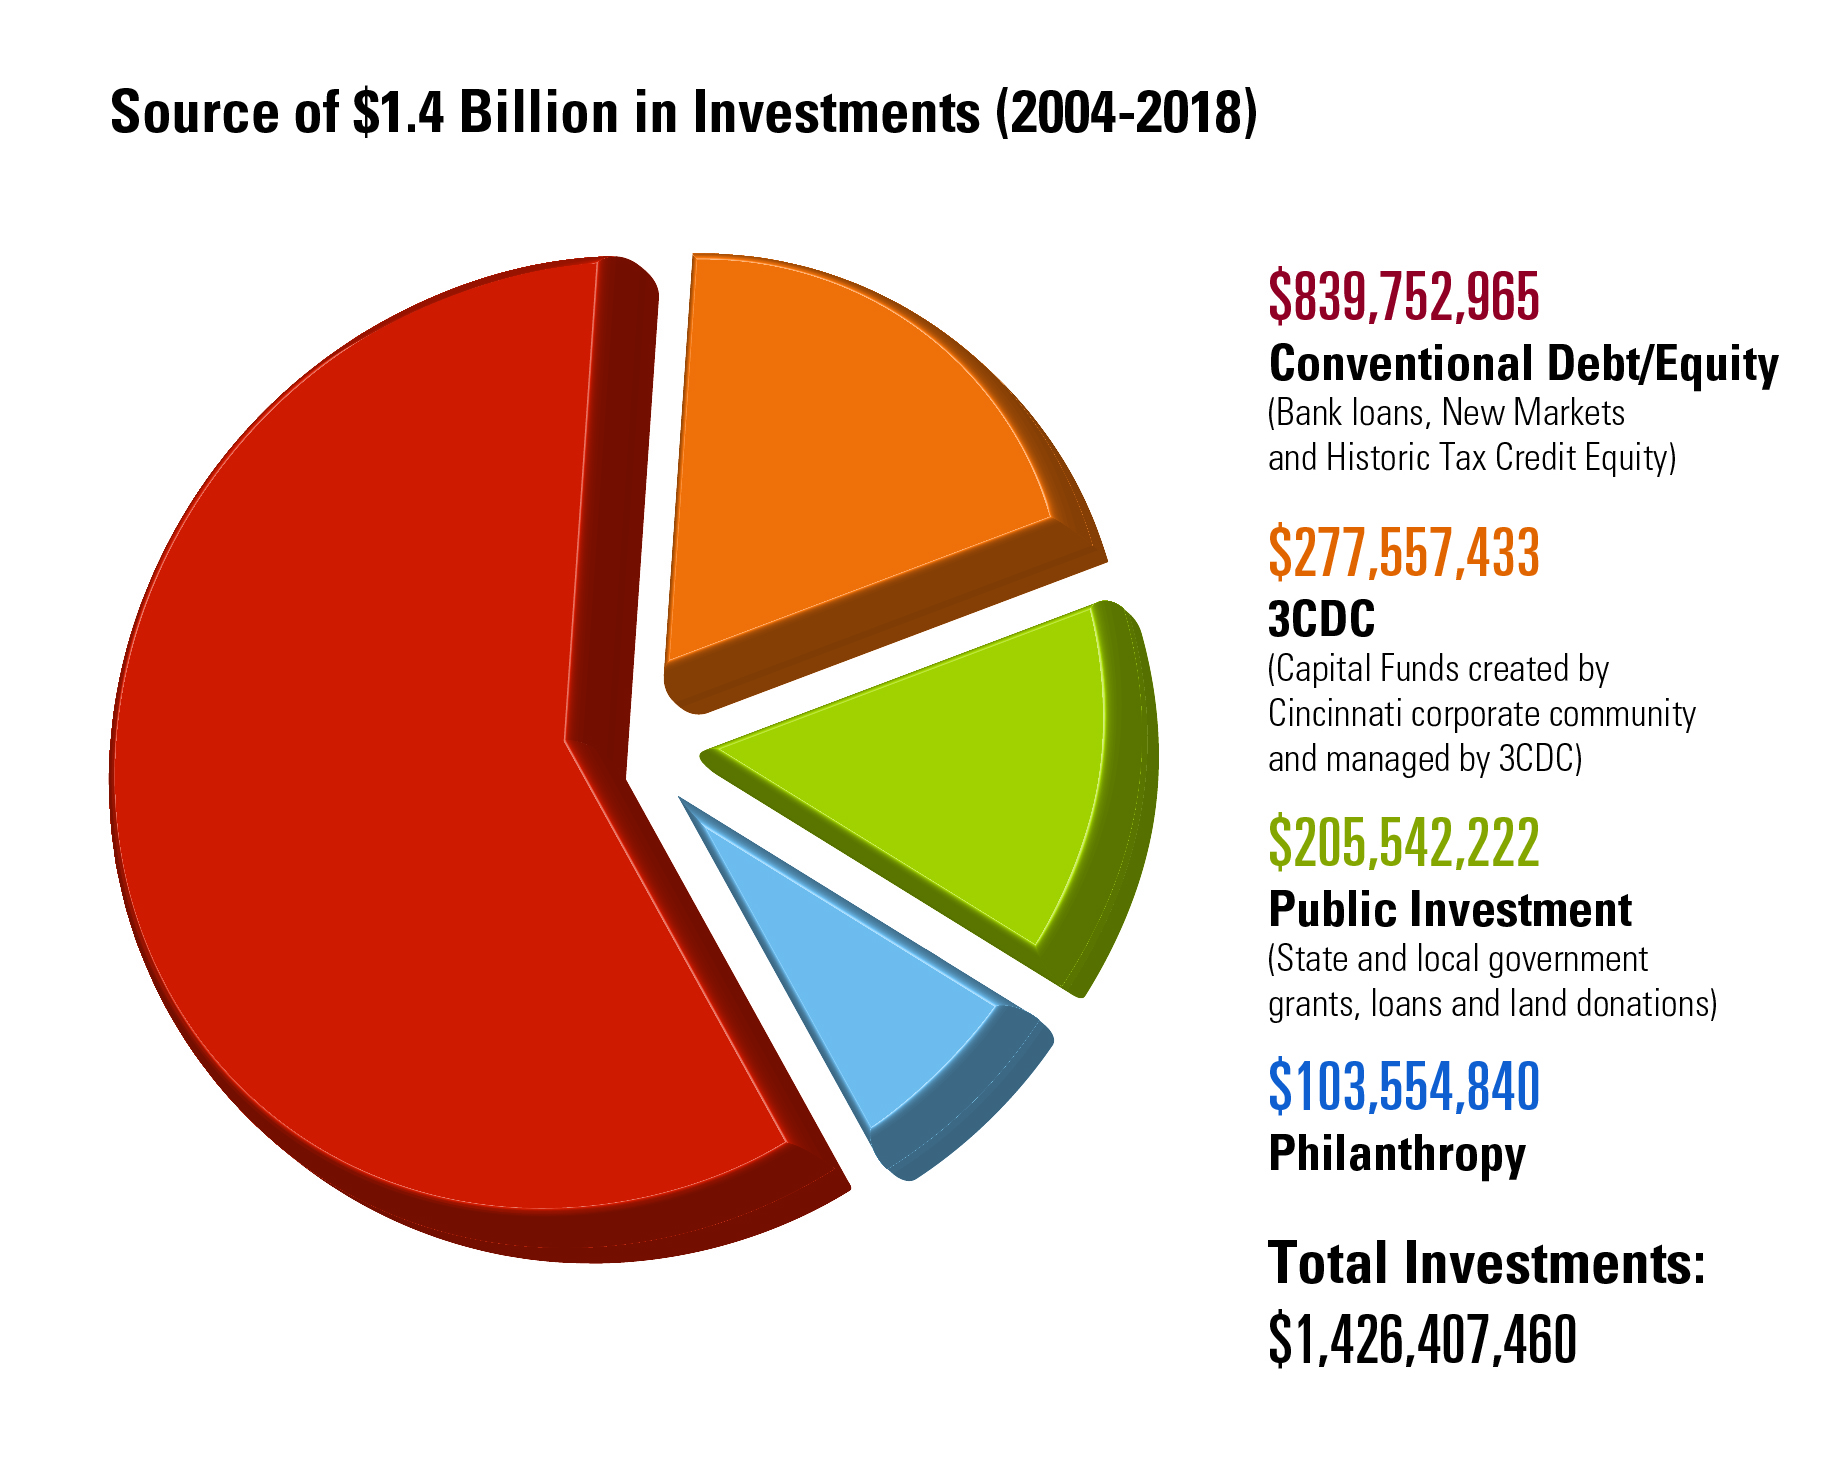 Sources of 3CDC investments